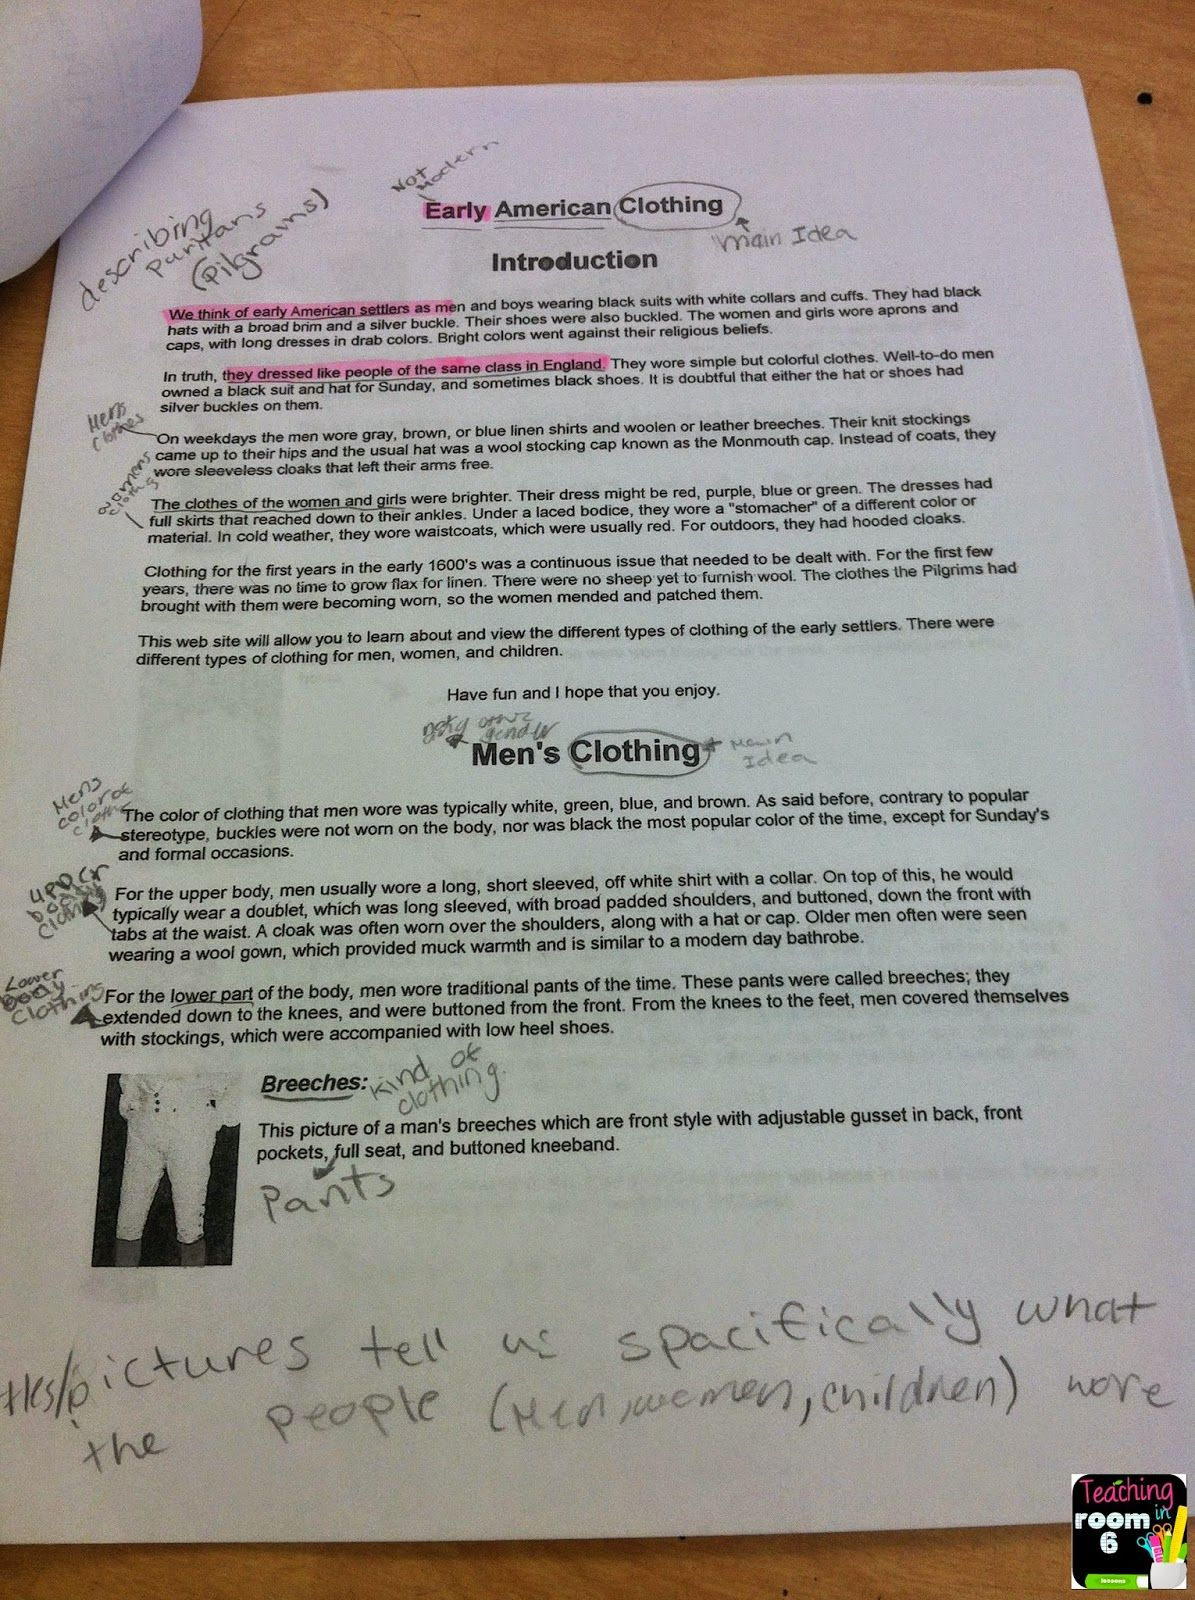 Finding The Main Idea In Expository Text By Asking Three